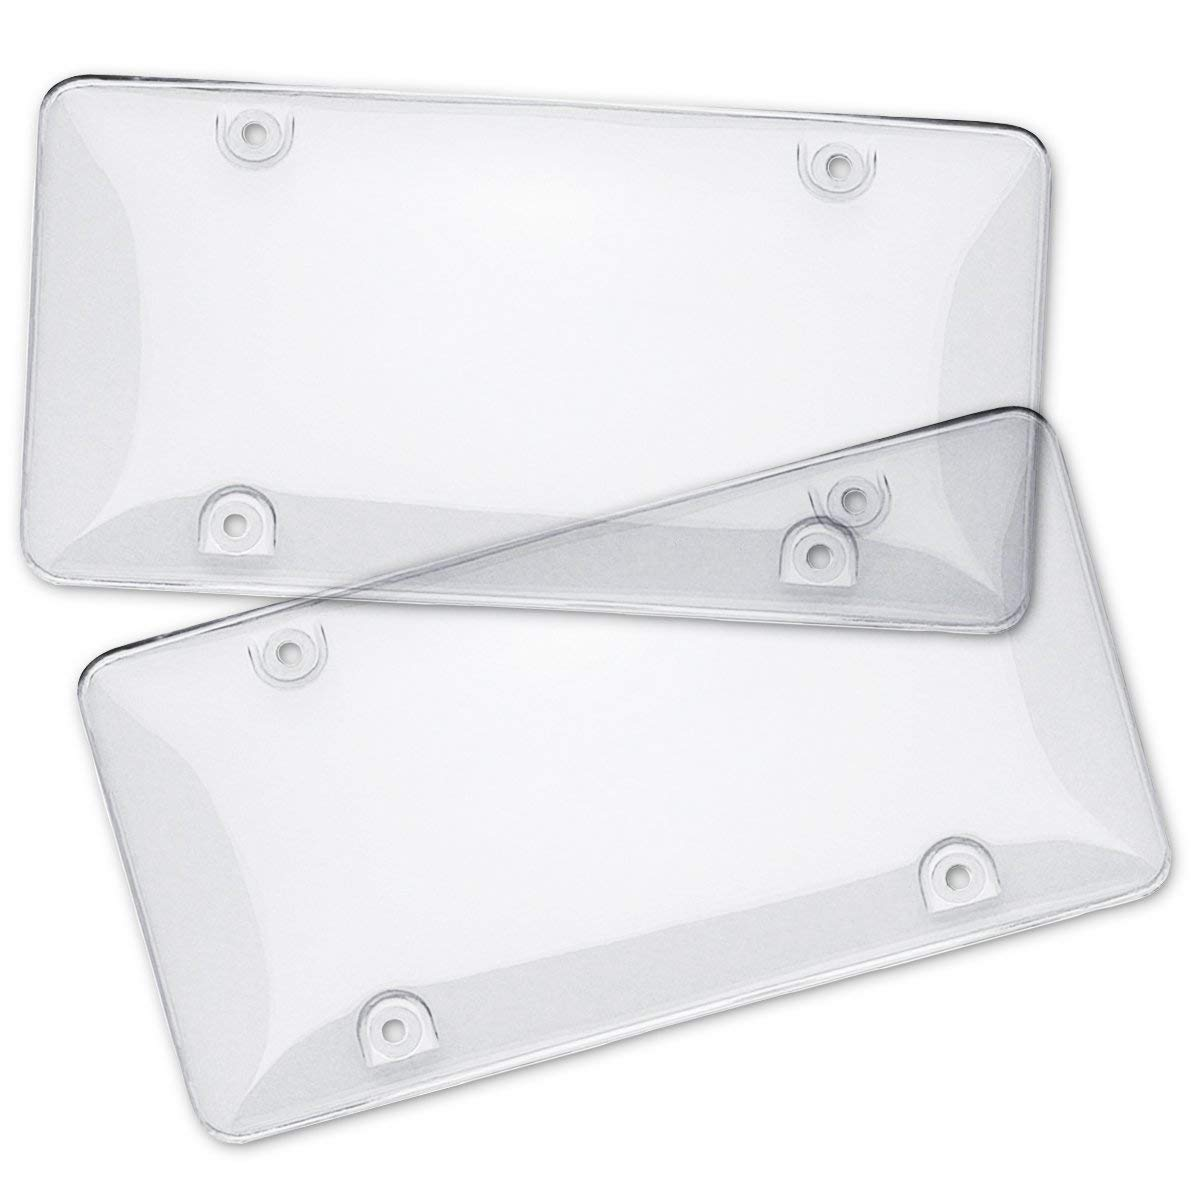 WHT Tinted License Plate Cover Clear - 2-Pack Novelty/USA License Plate Flat Shield